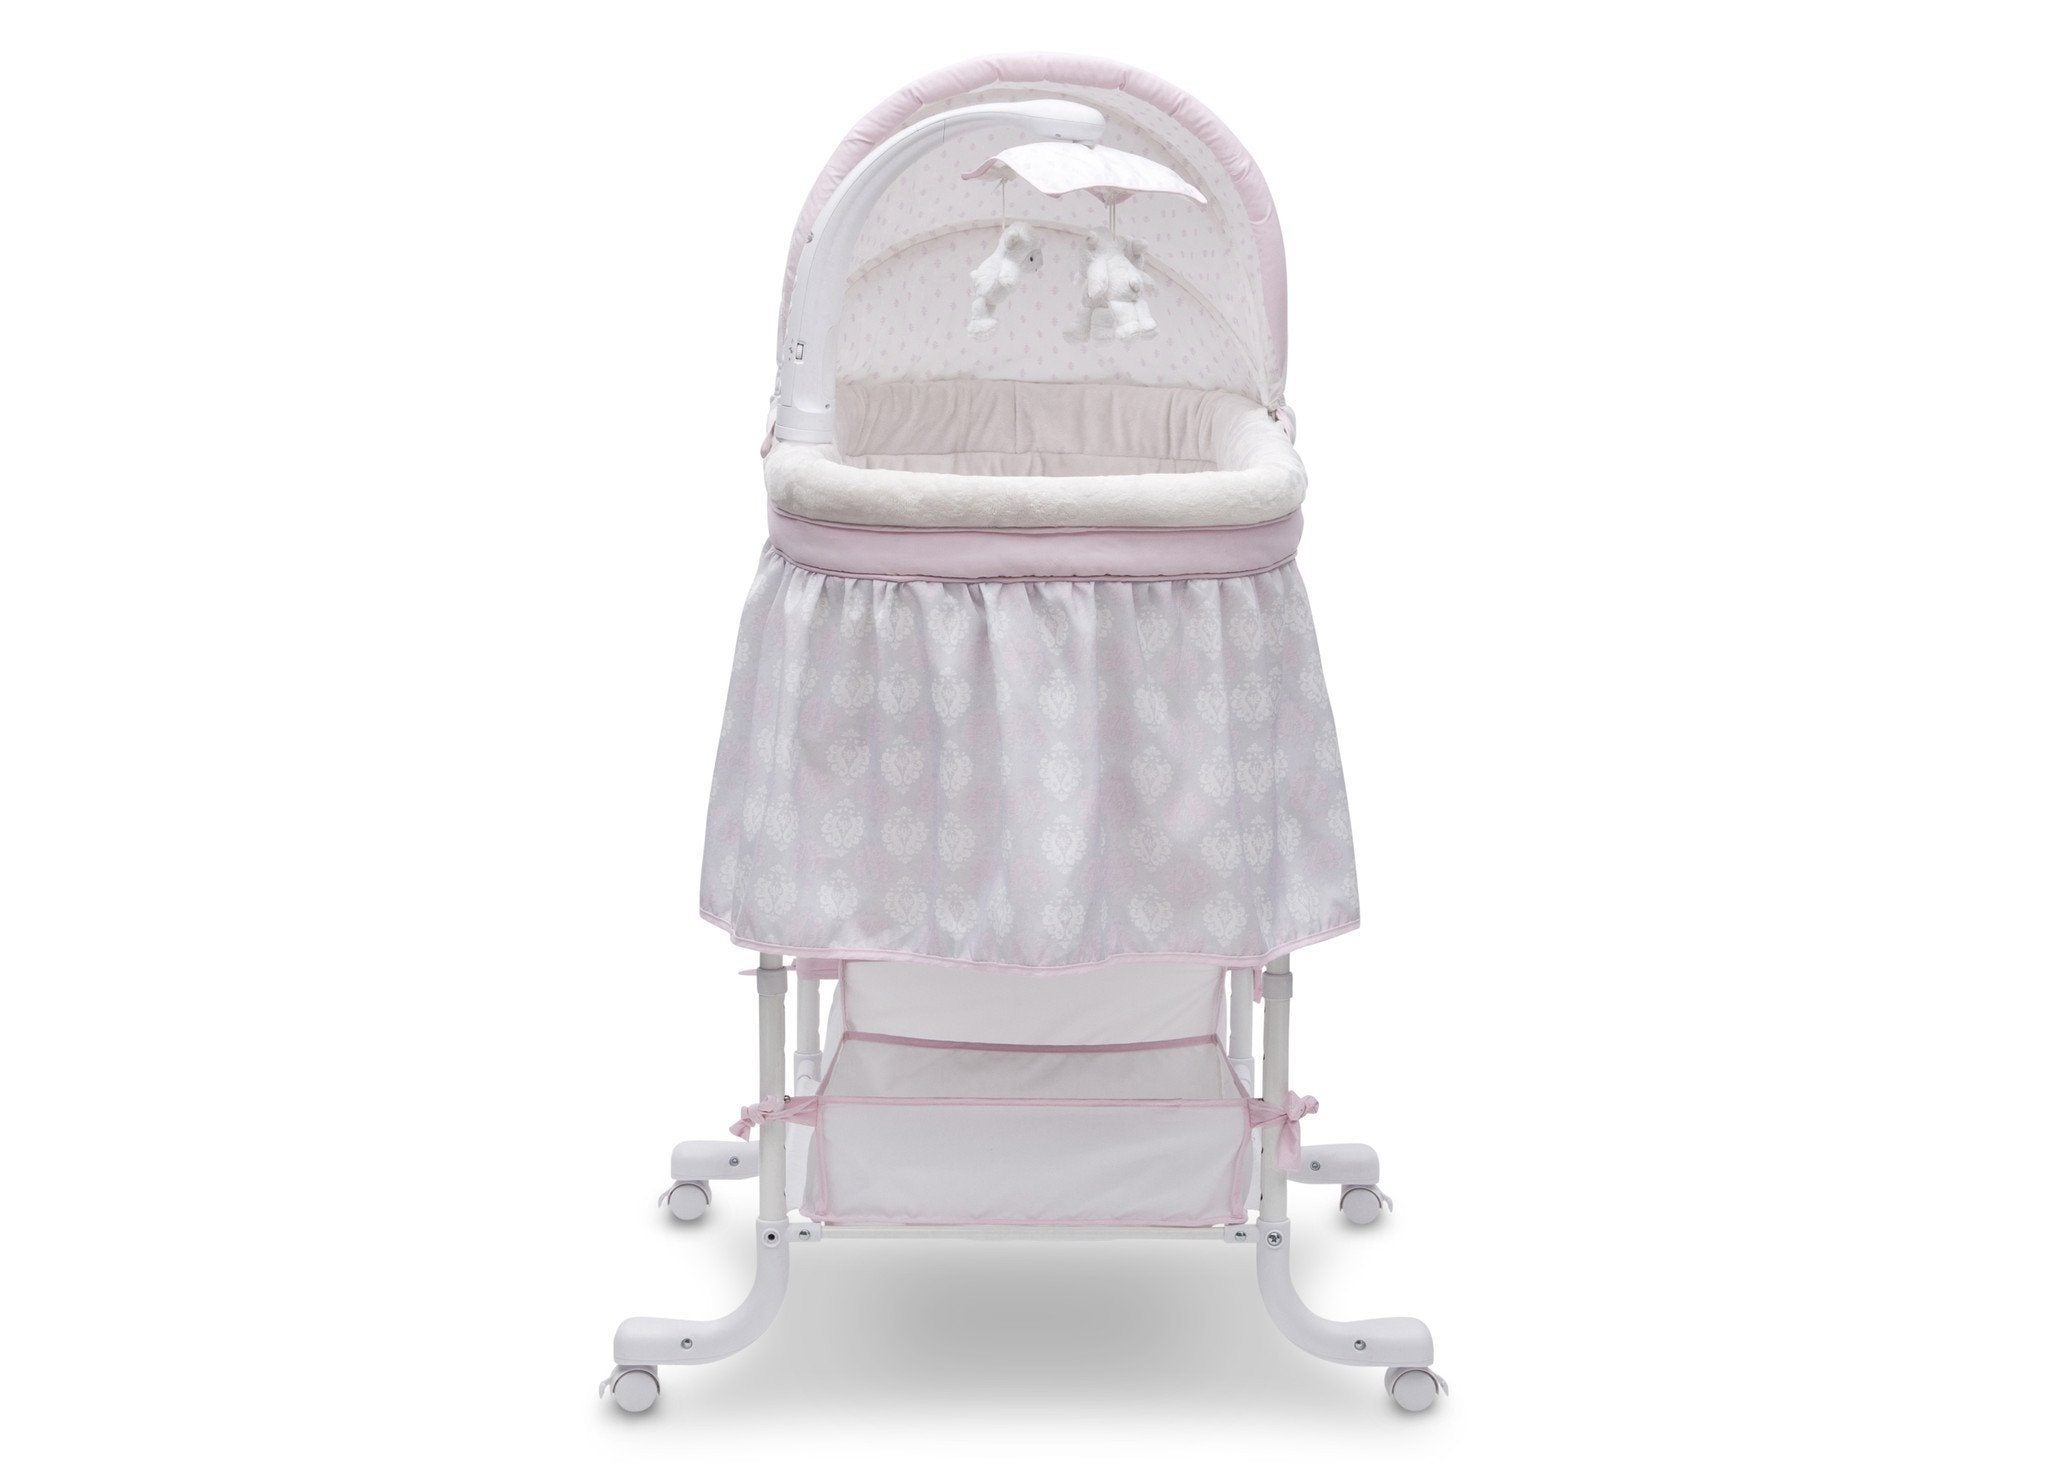 Simmons Kids Lucia (699) Deluxe Gliding Bassinet Front View e2e